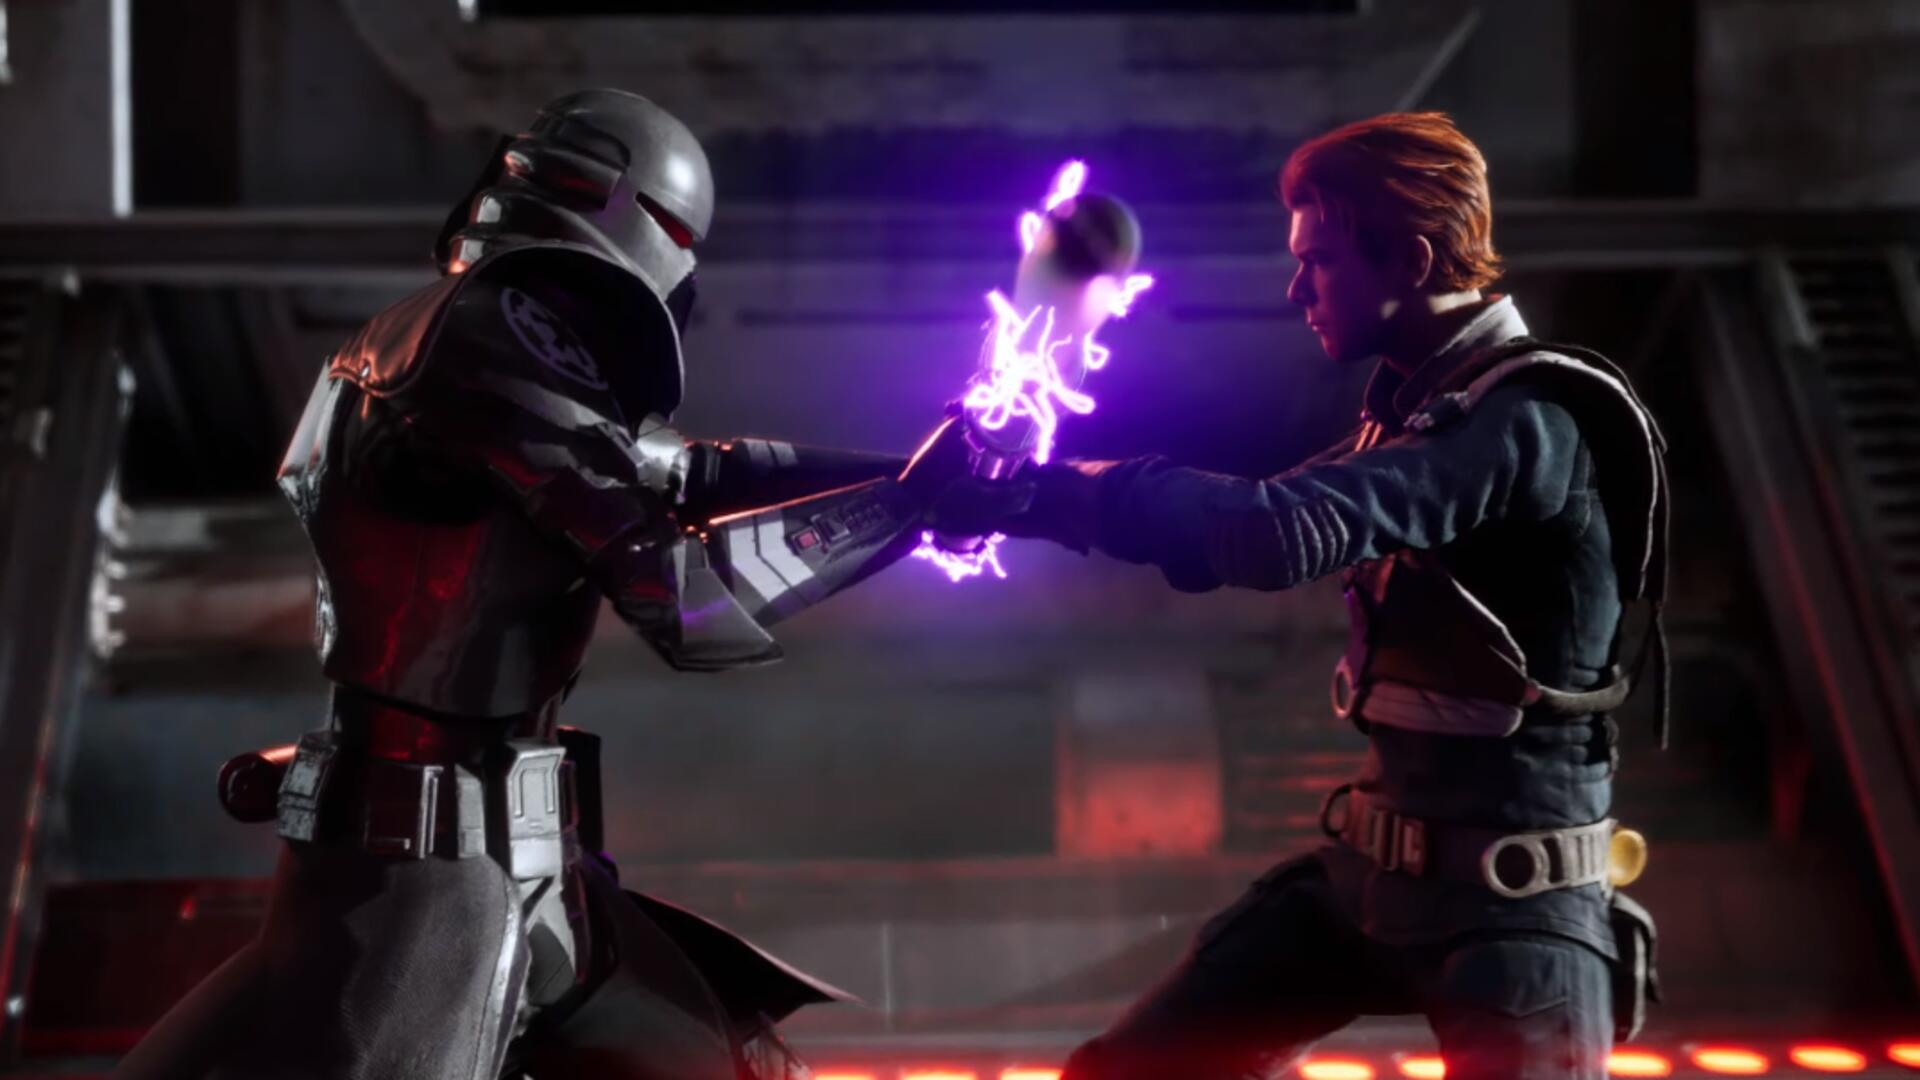 You Won't Be Dismembering Legions of Stormtroopers in Fallen Order, Due To Disney Guidelines